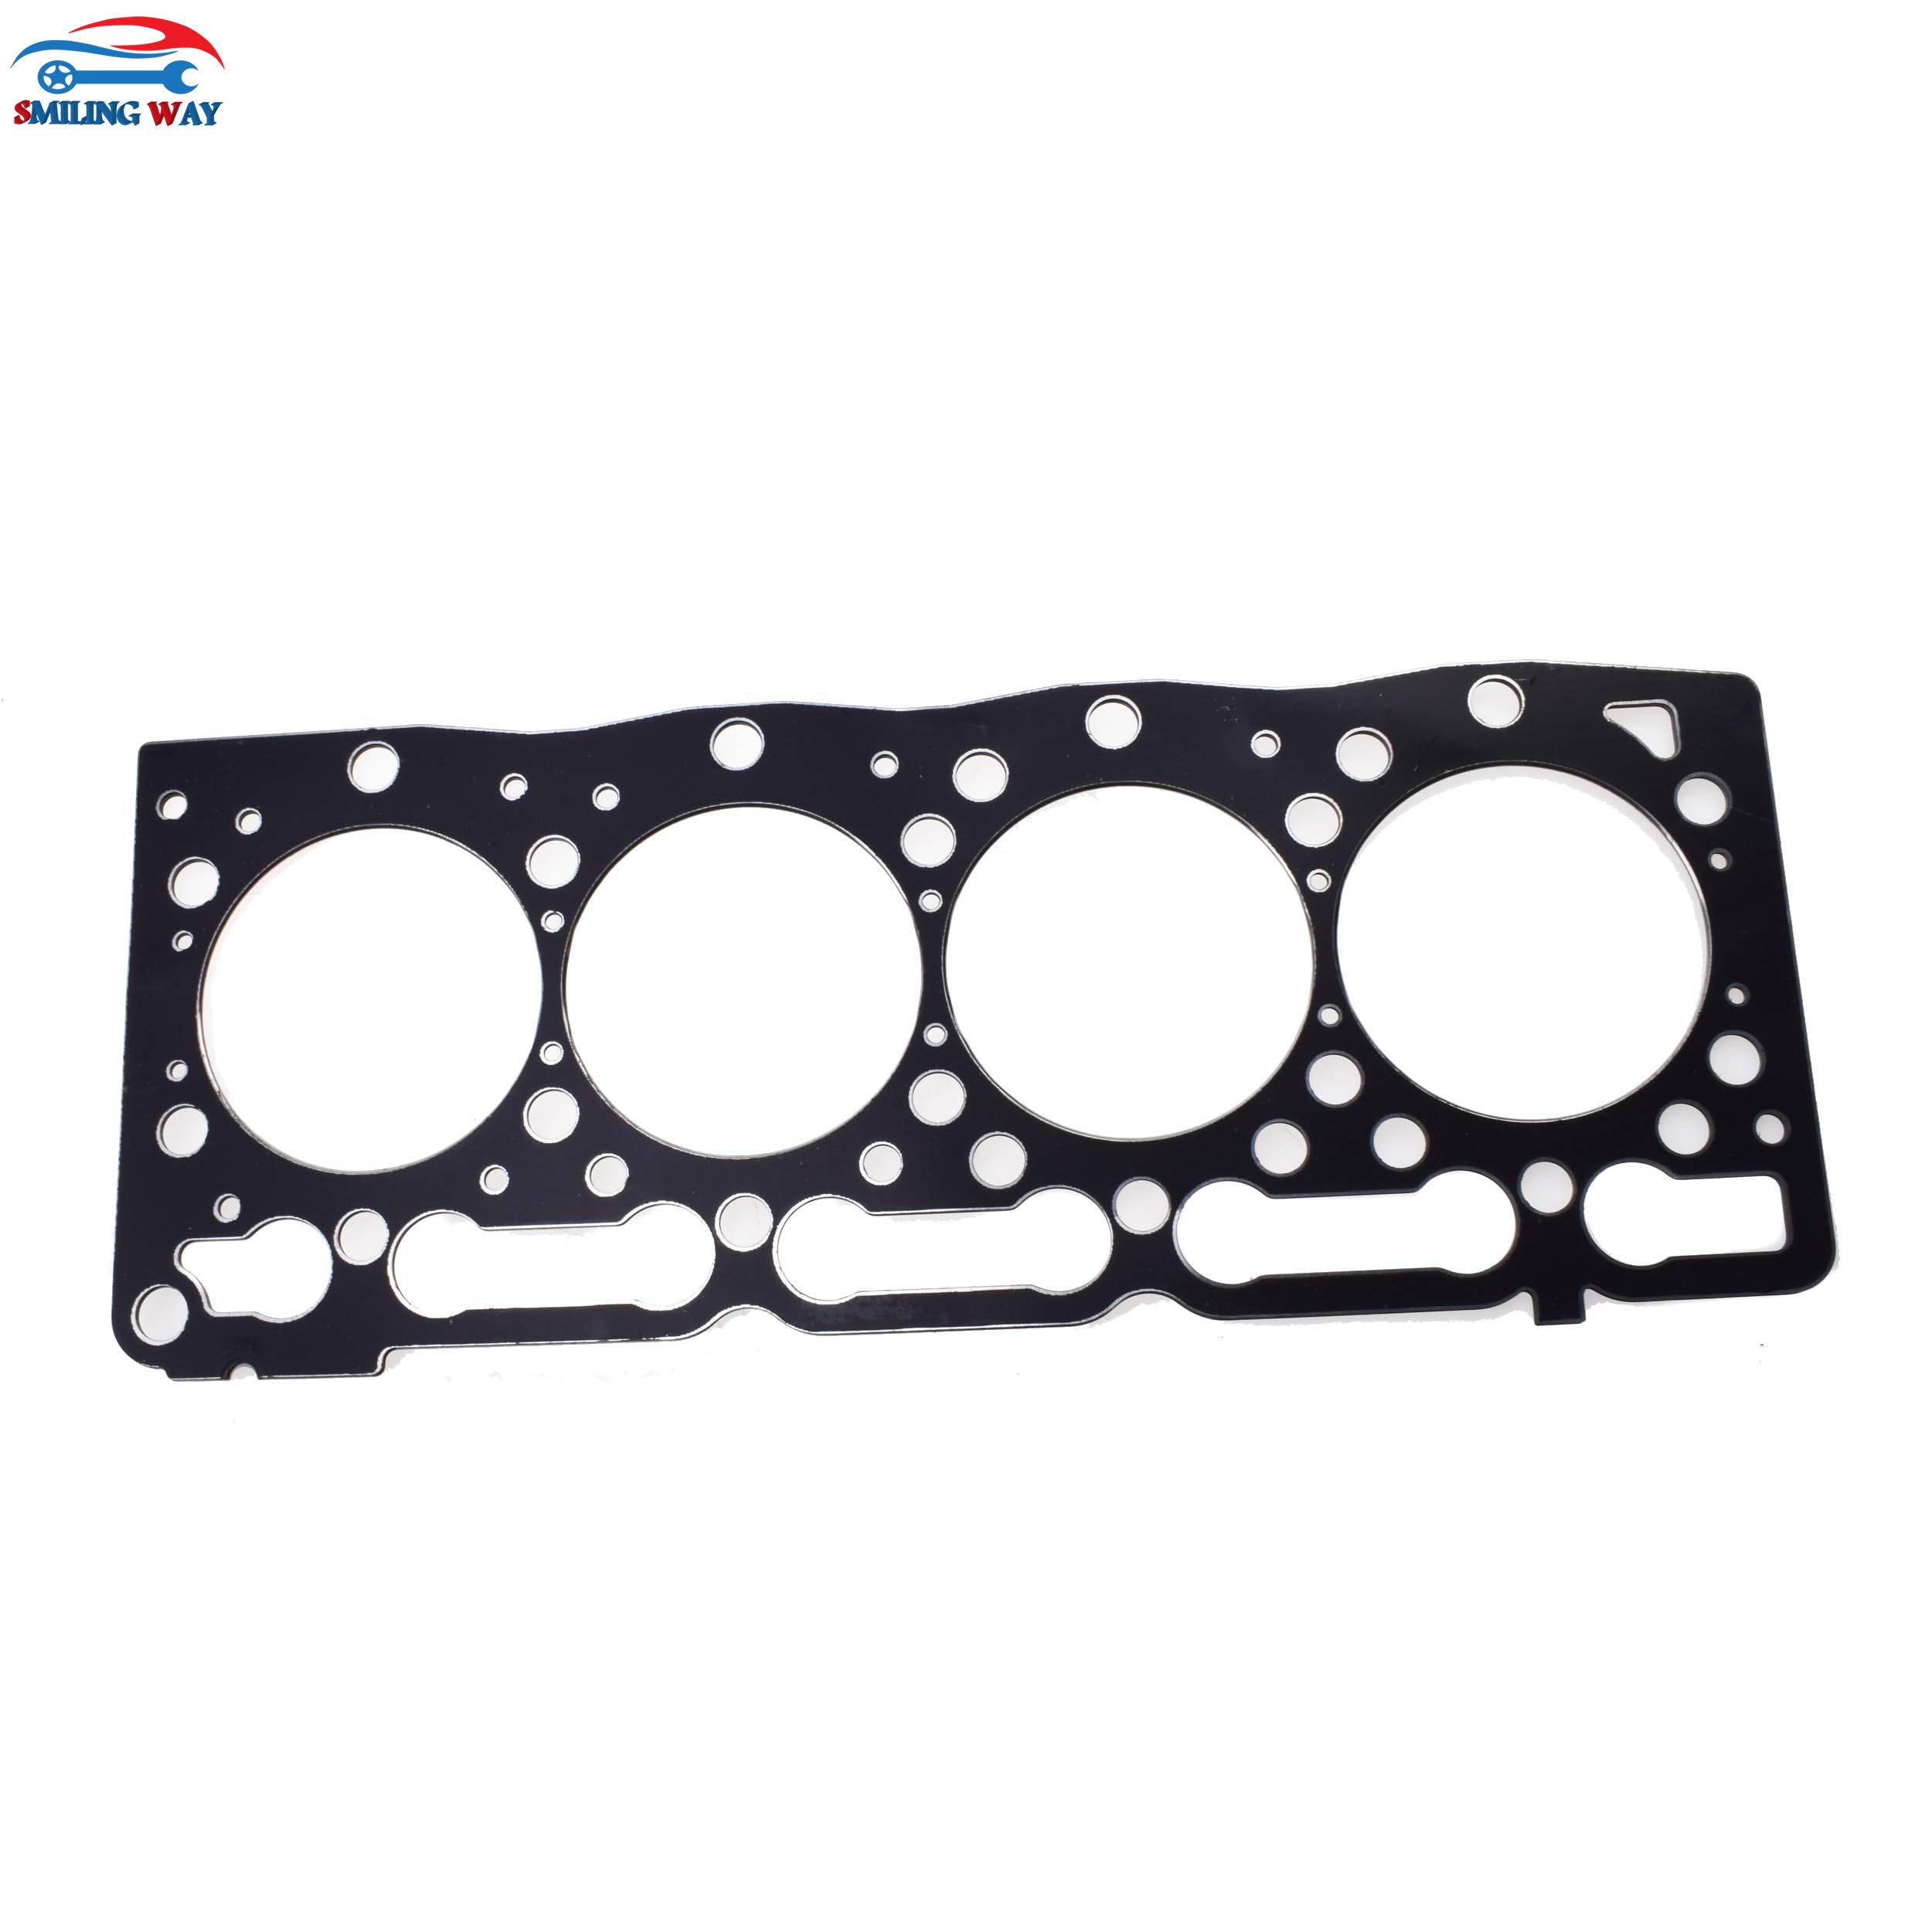 small resolution of smiling way engine head gasket for kubota v1505 oe kbrv1712gh 16394 03310 in cyl head valve cover gasket from automobiles motorcycles on